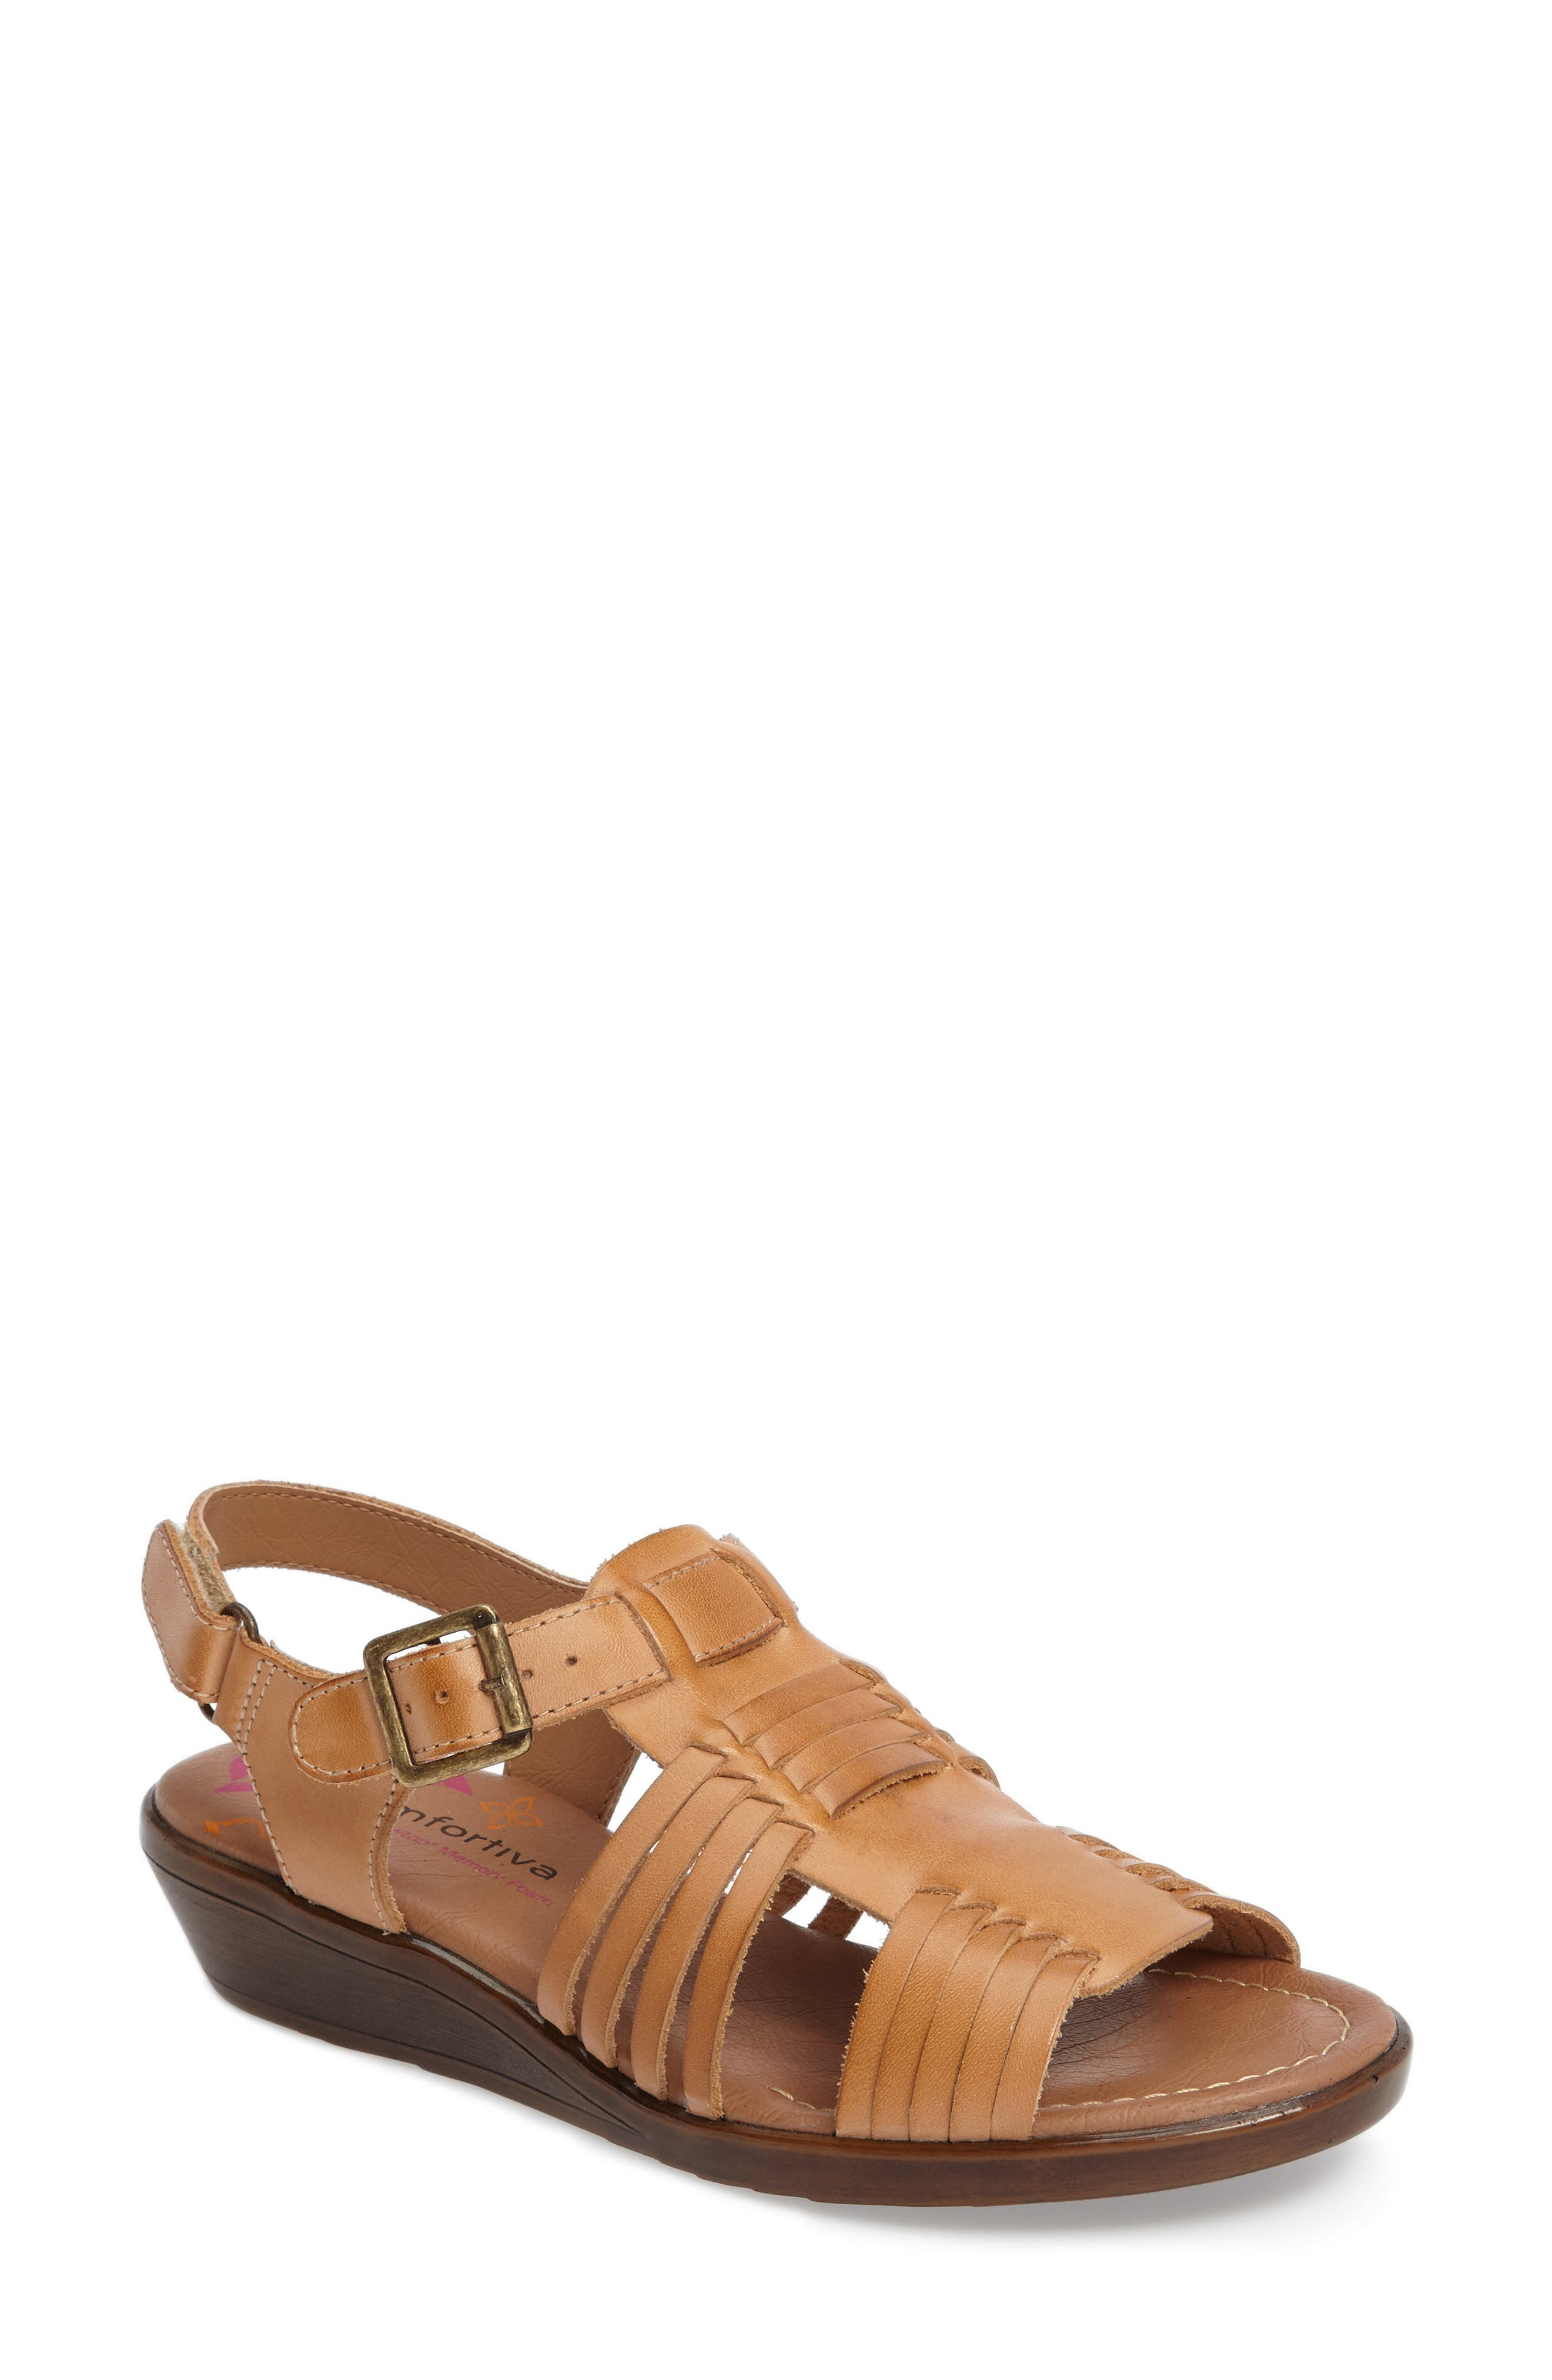 Freeport Sandal,                             Main thumbnail 1, color,                             NATURAL LEATHER